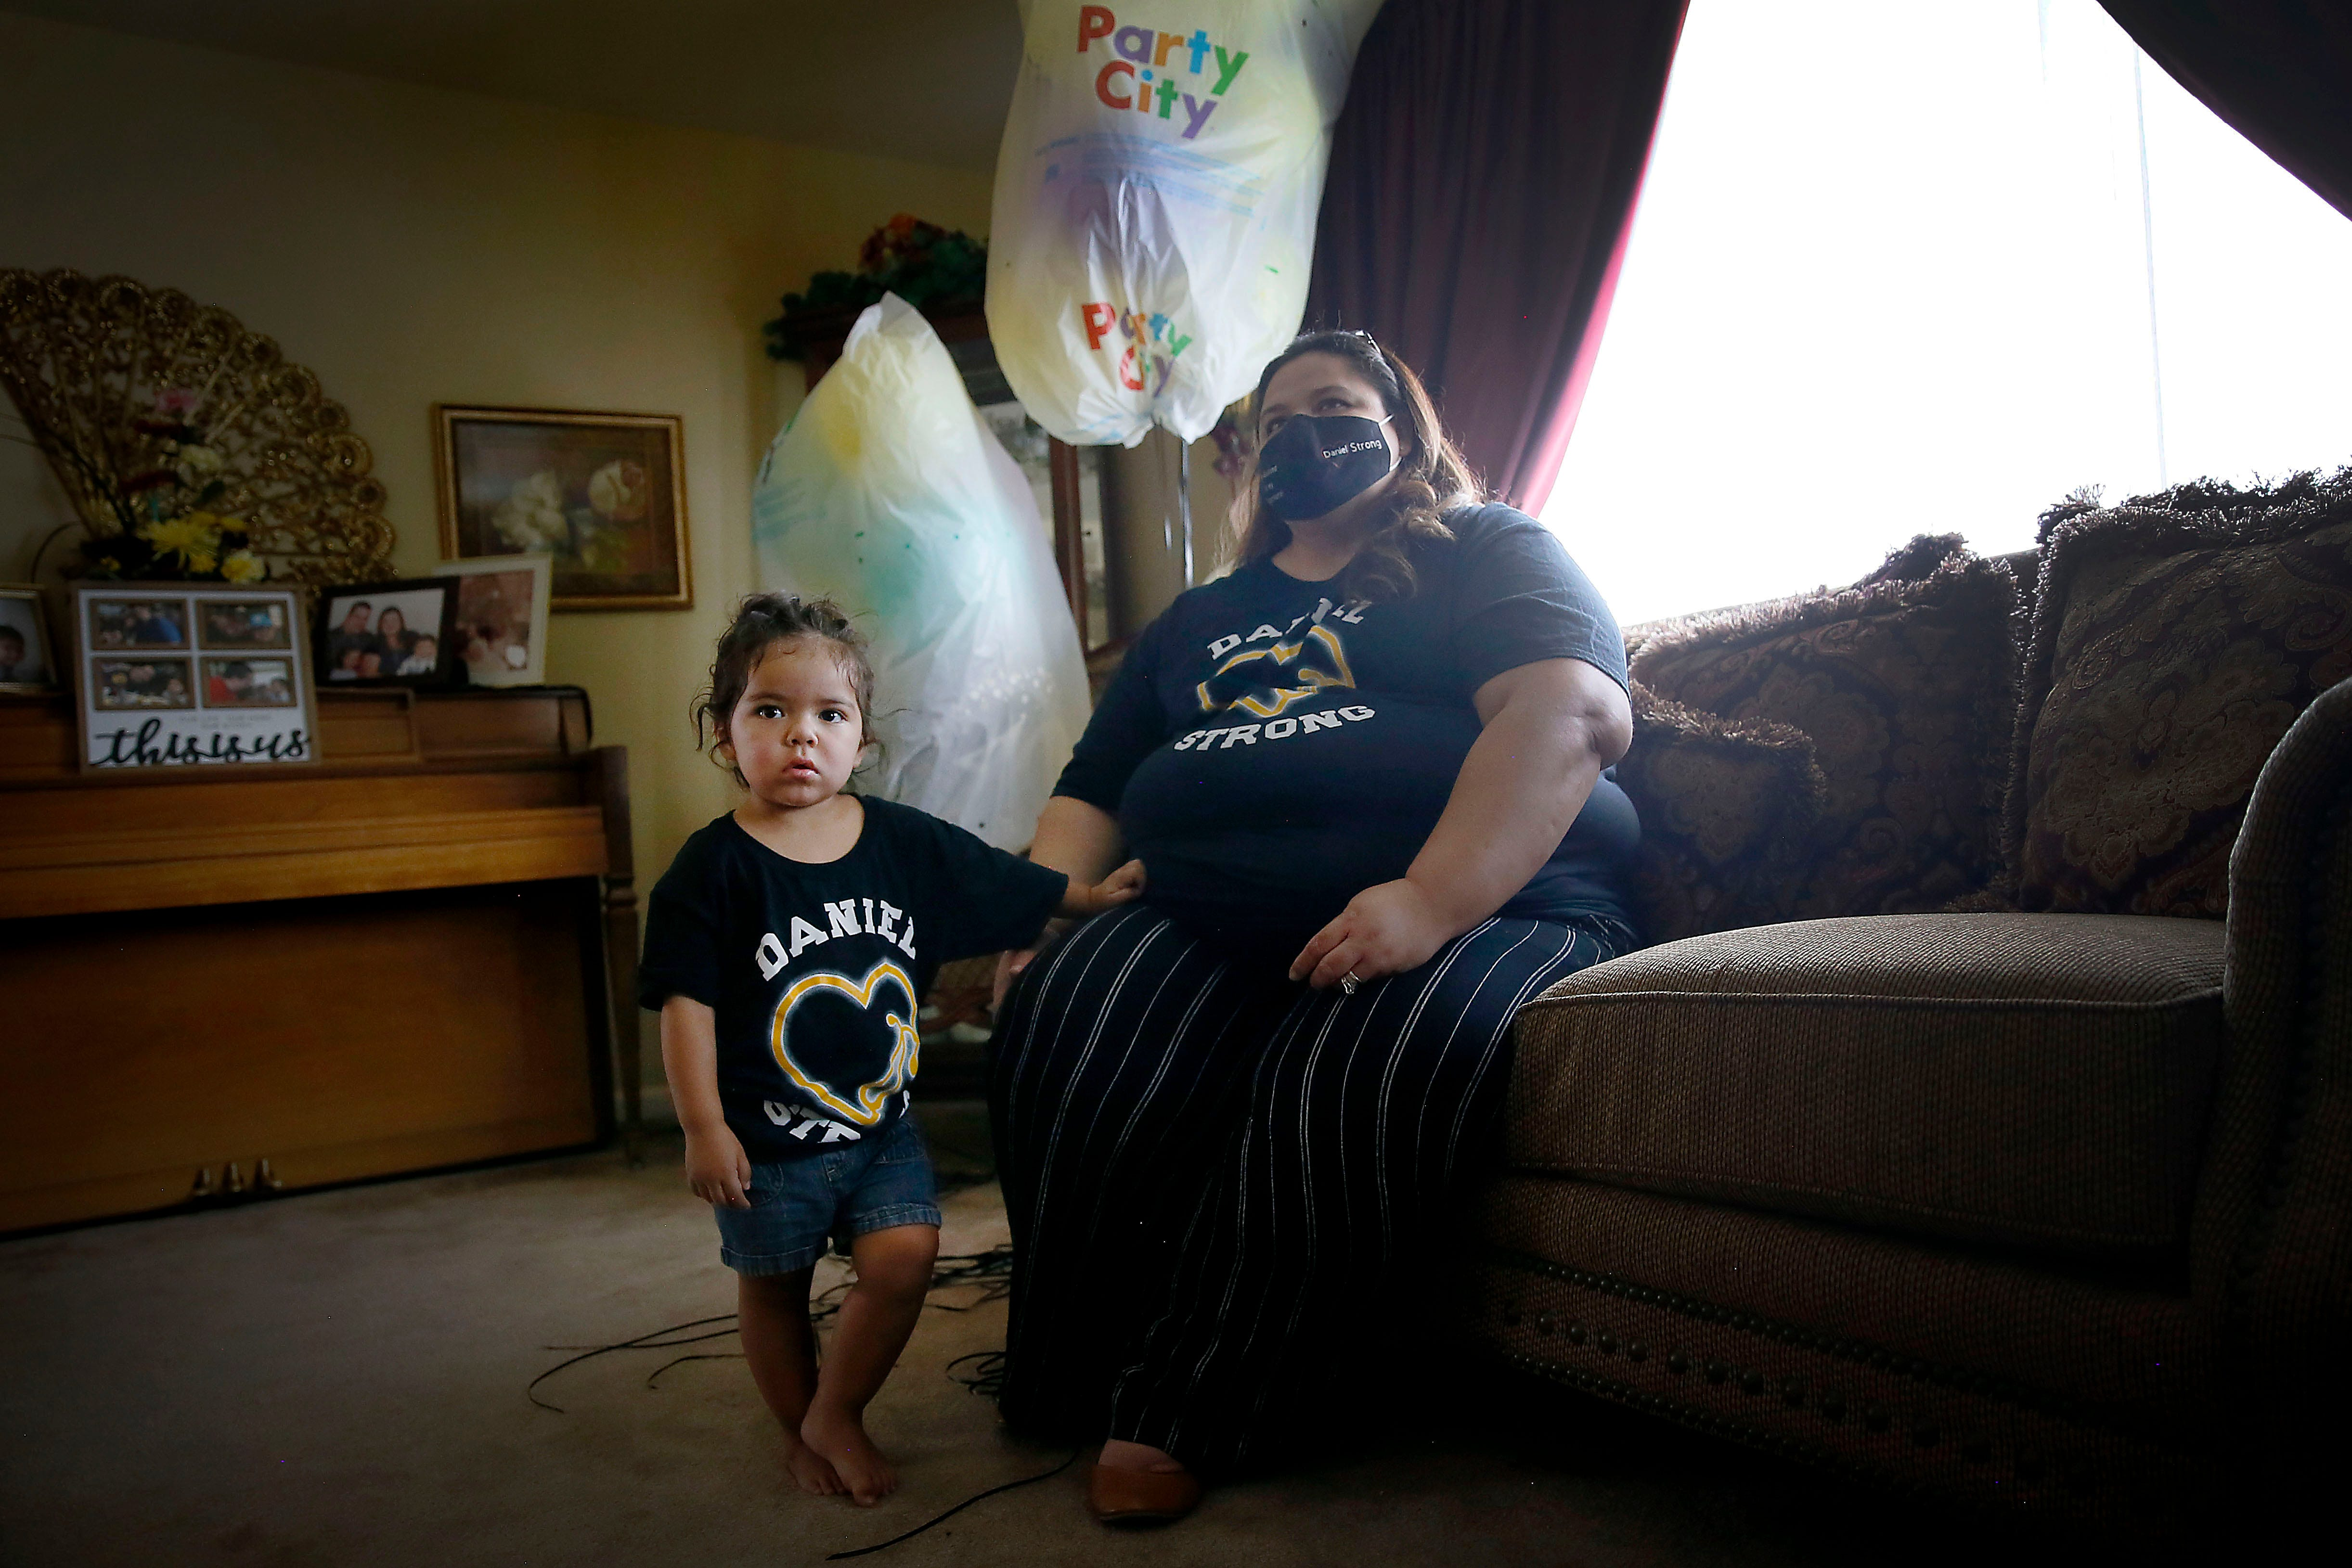 Erika Castor-Morales talks about her late husband, Daniel Morales, while holding her daughter, Desiree Morales, among balloons for what would have been his 40th birthday Aug. 21, 2020 at her in-laws' home in El Paso.